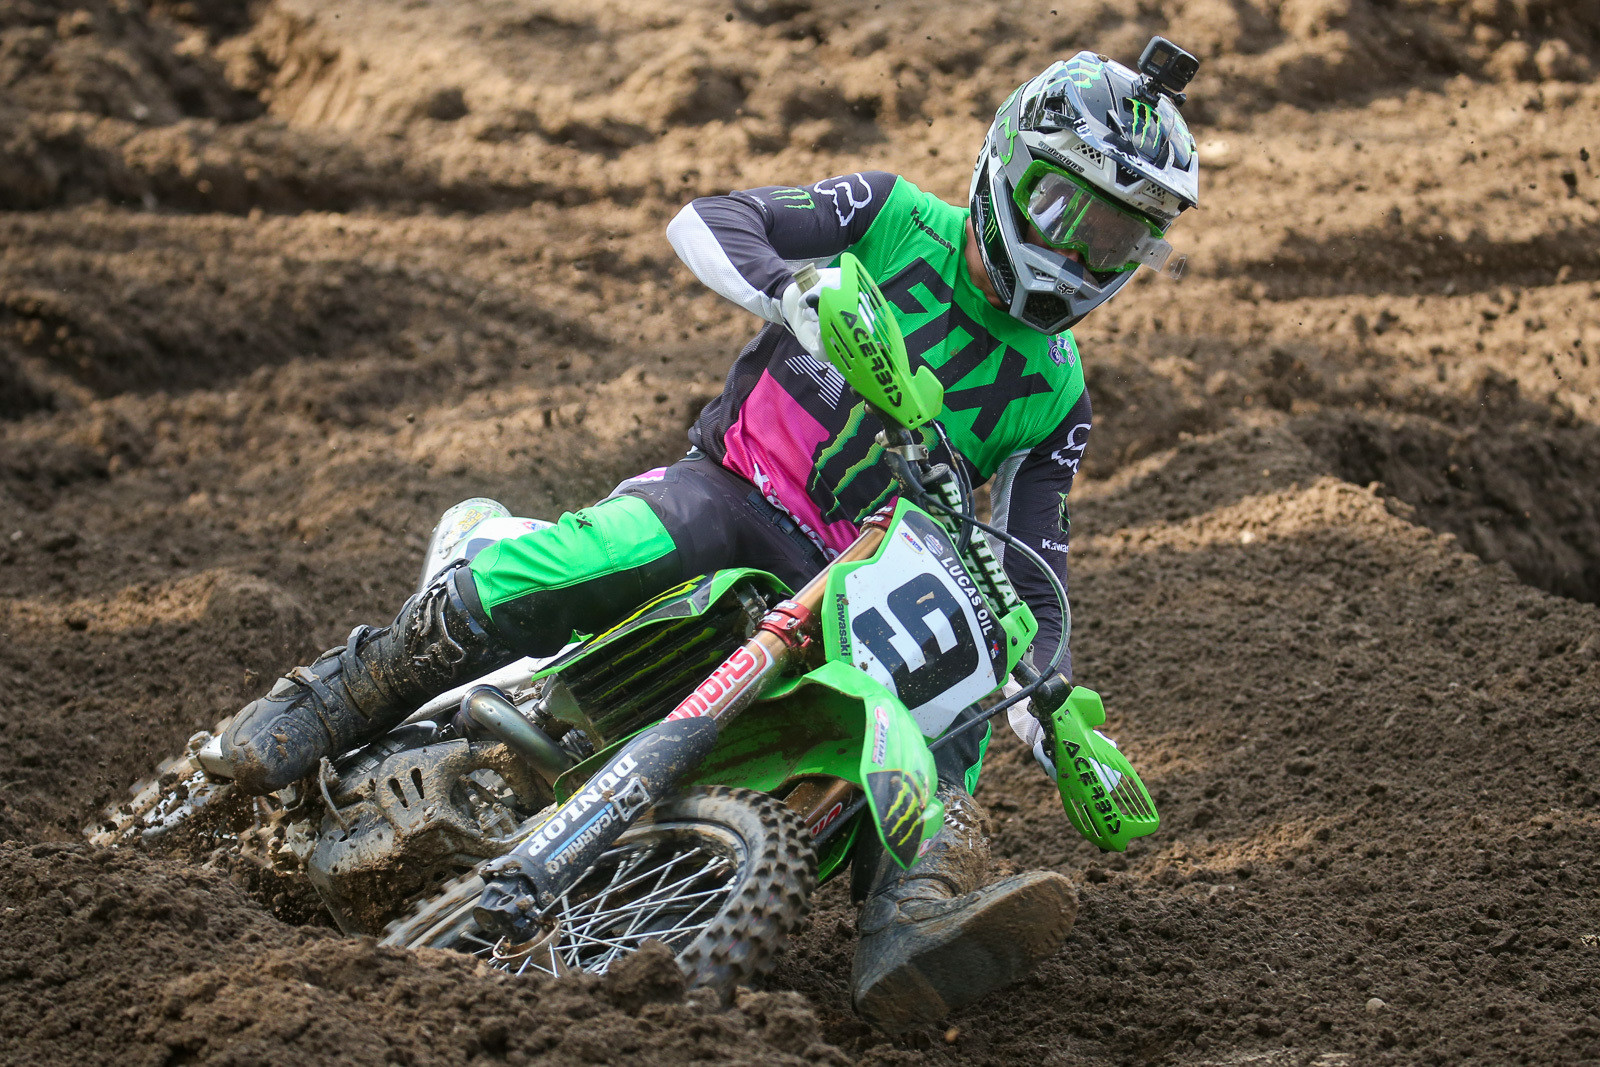 Adam Cianciarulo had a mixed bag to start the season, with a sixth in moto one; and a great start, but a crash and DNF in moto two.